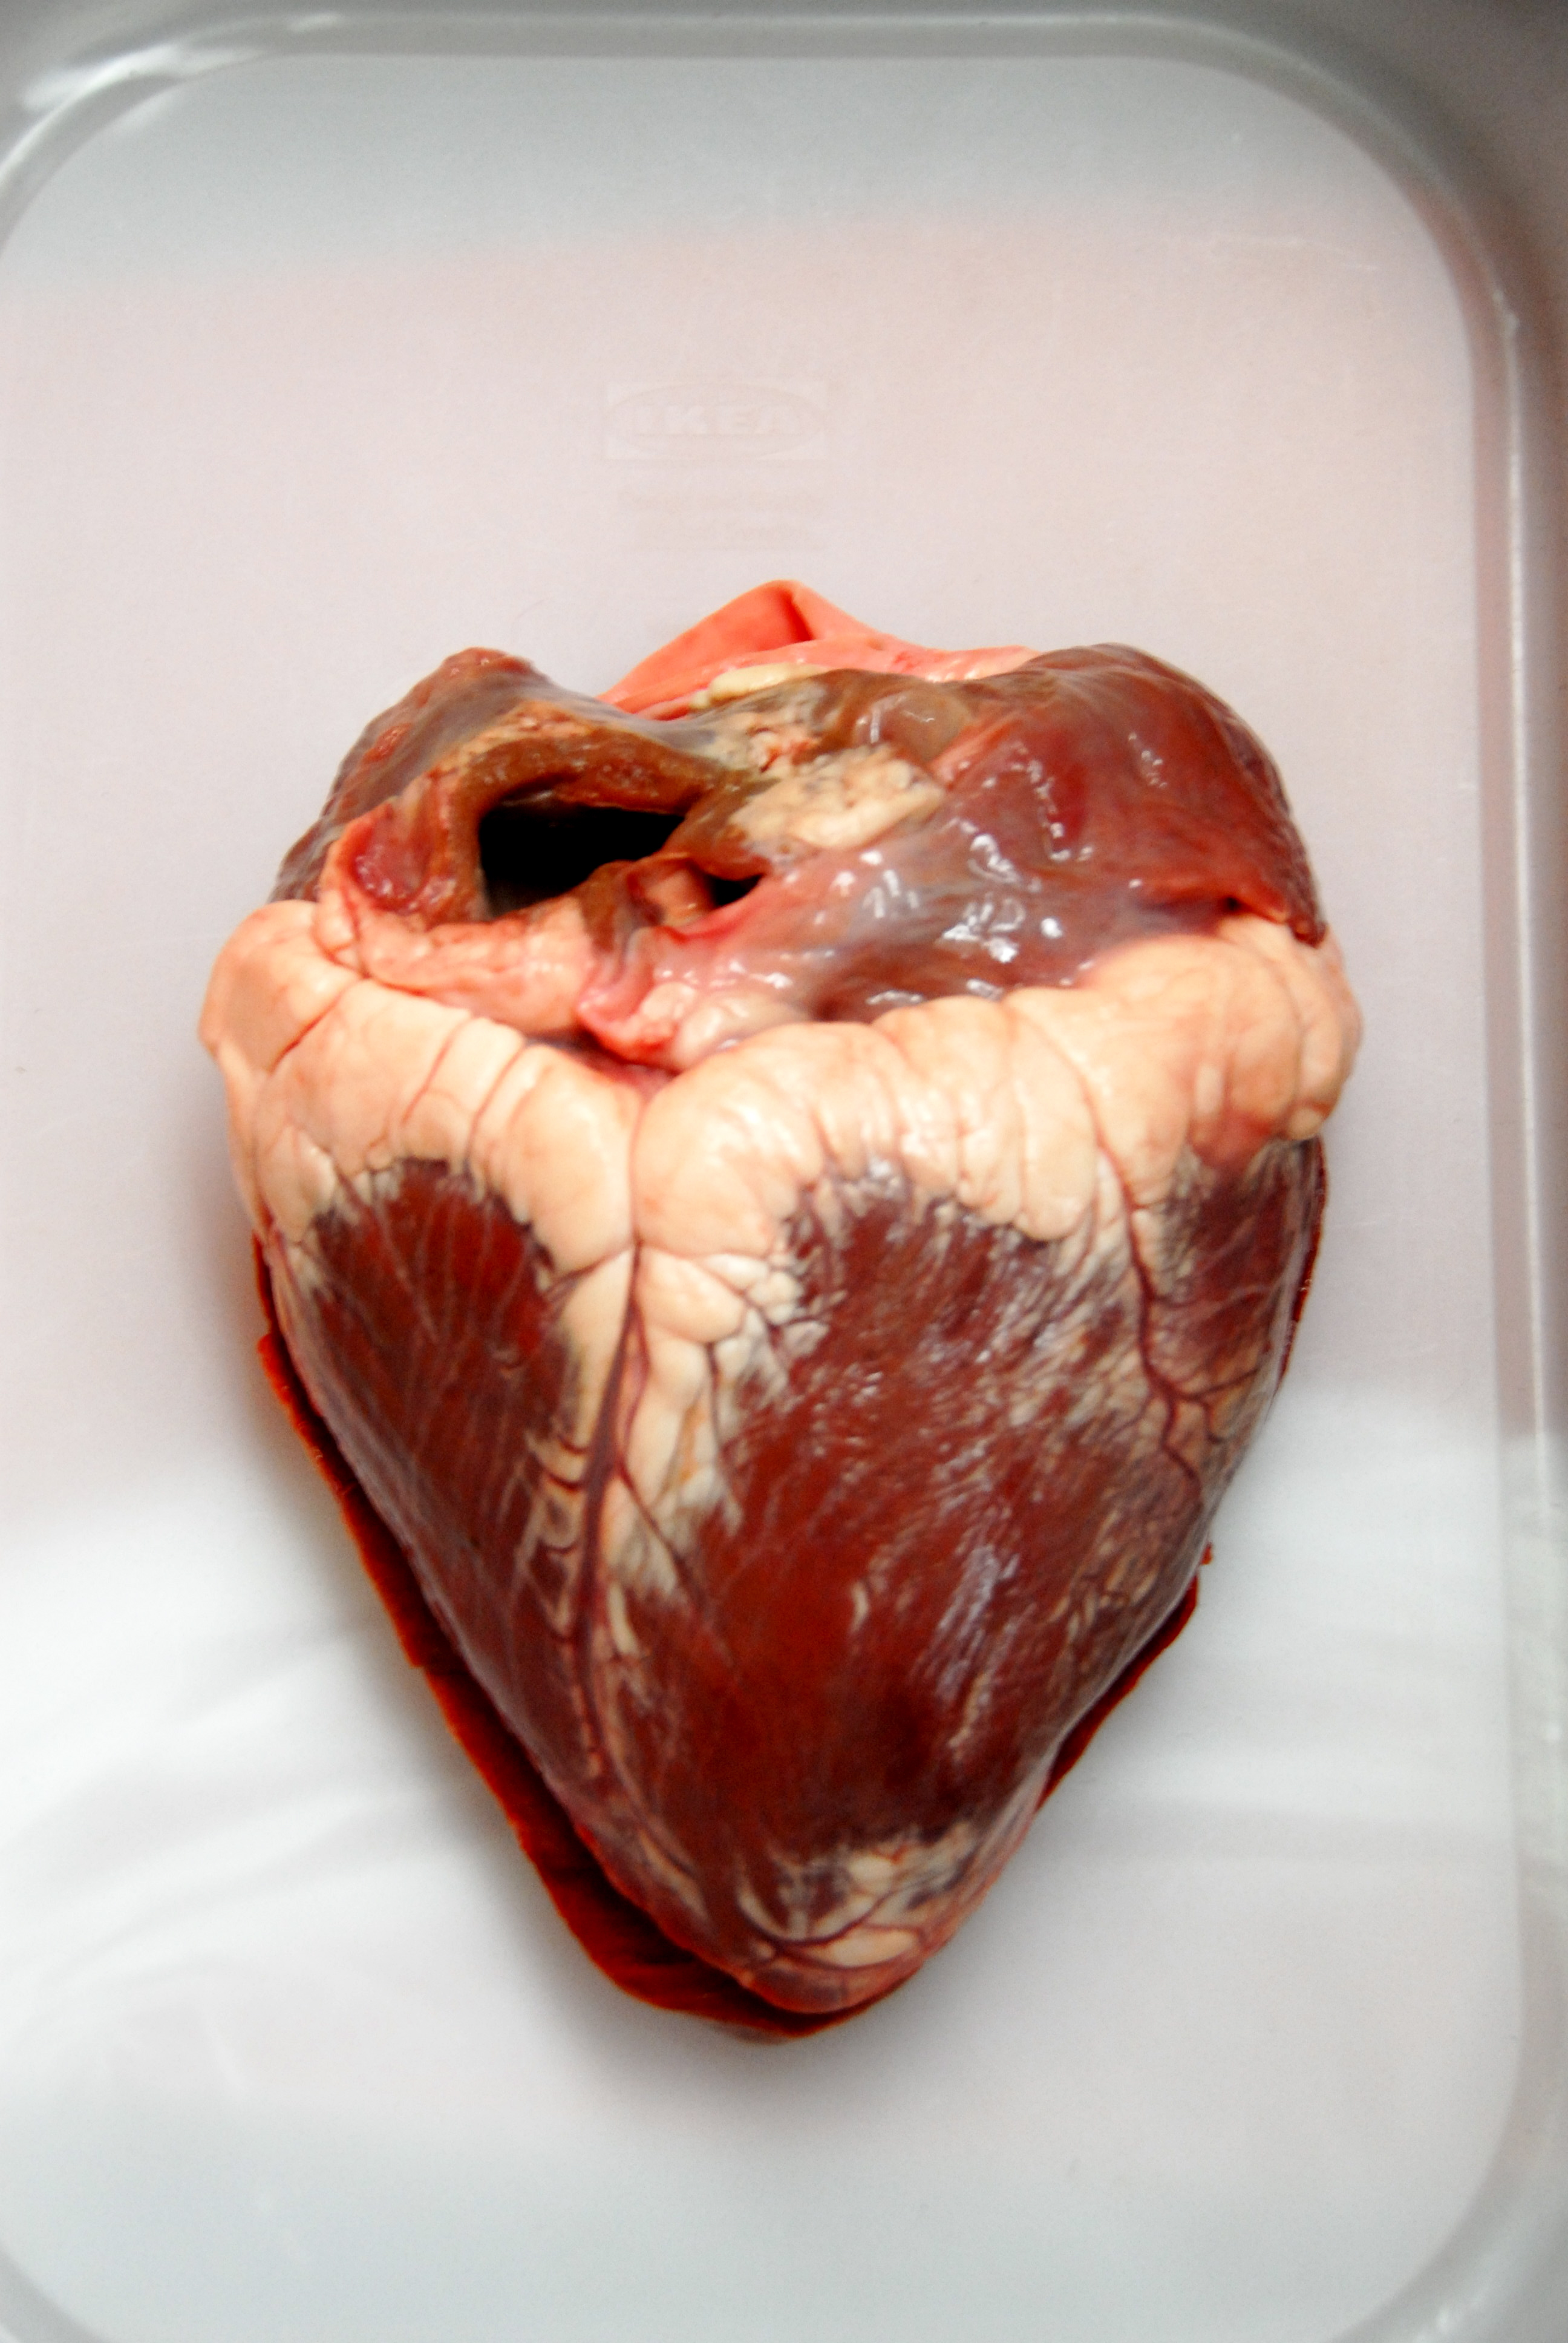 Real human heart images - photo#5